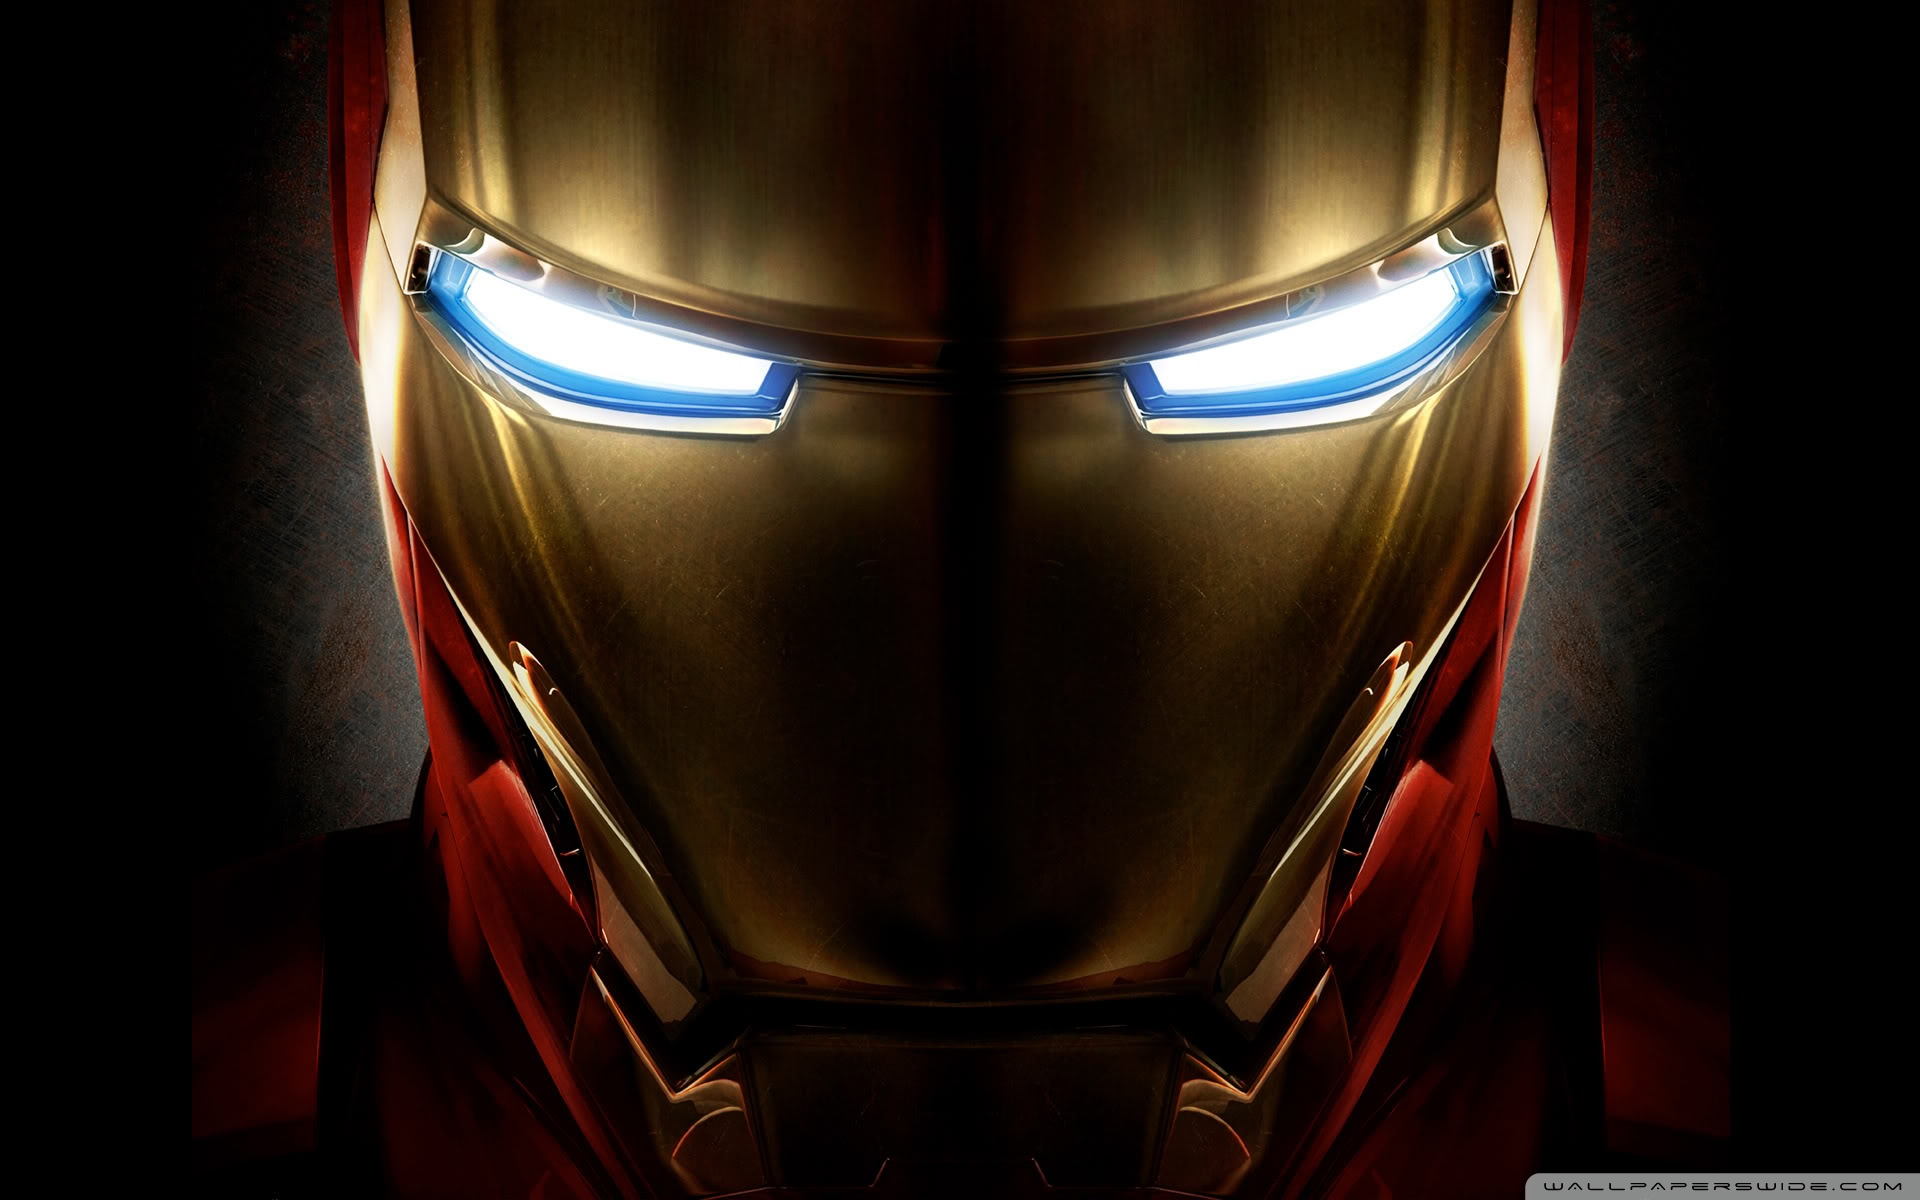 WallpapersWide com | Iron Man HD Desktop Wallpapers for Widescreen